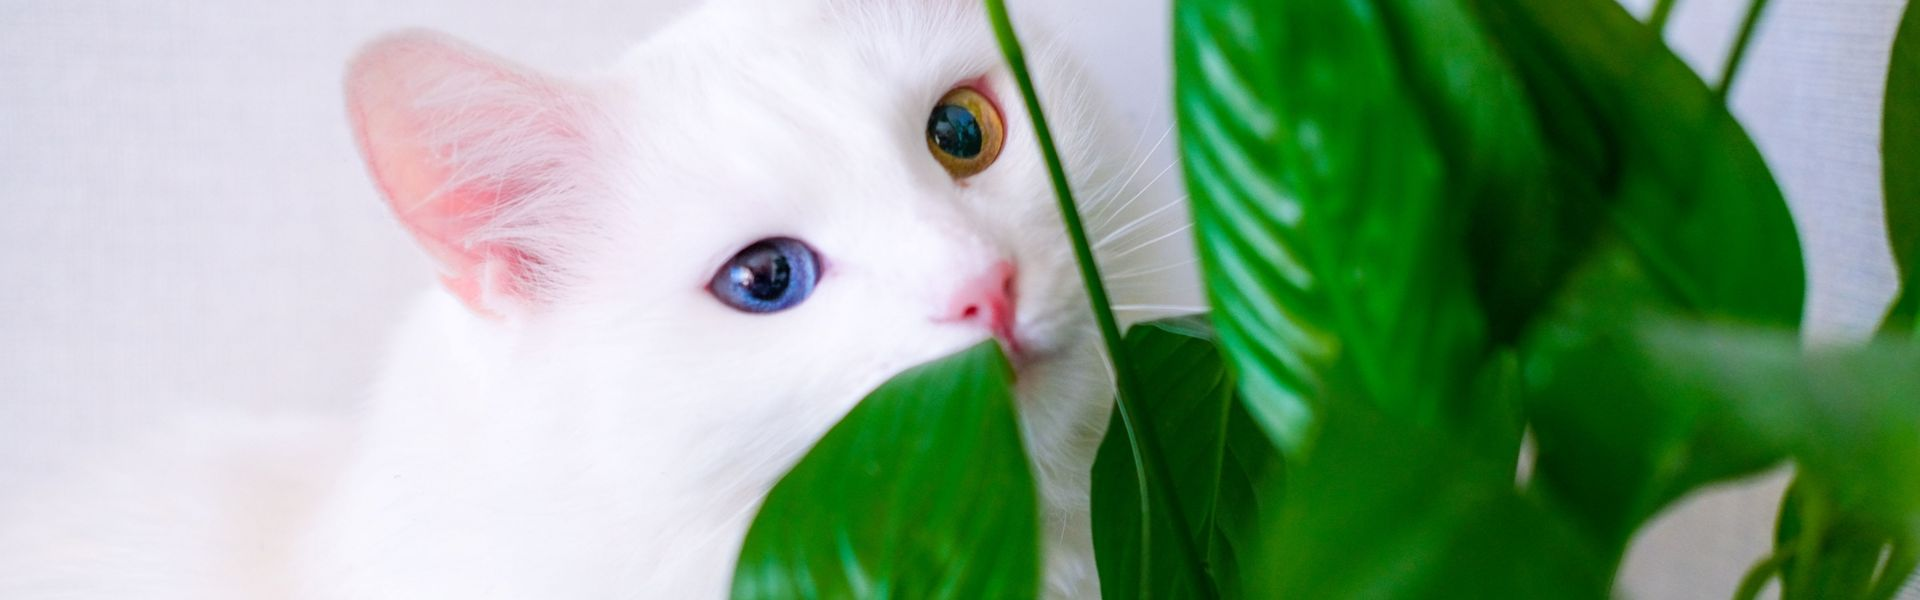 Toss These Toxic Plants If You Have Pets